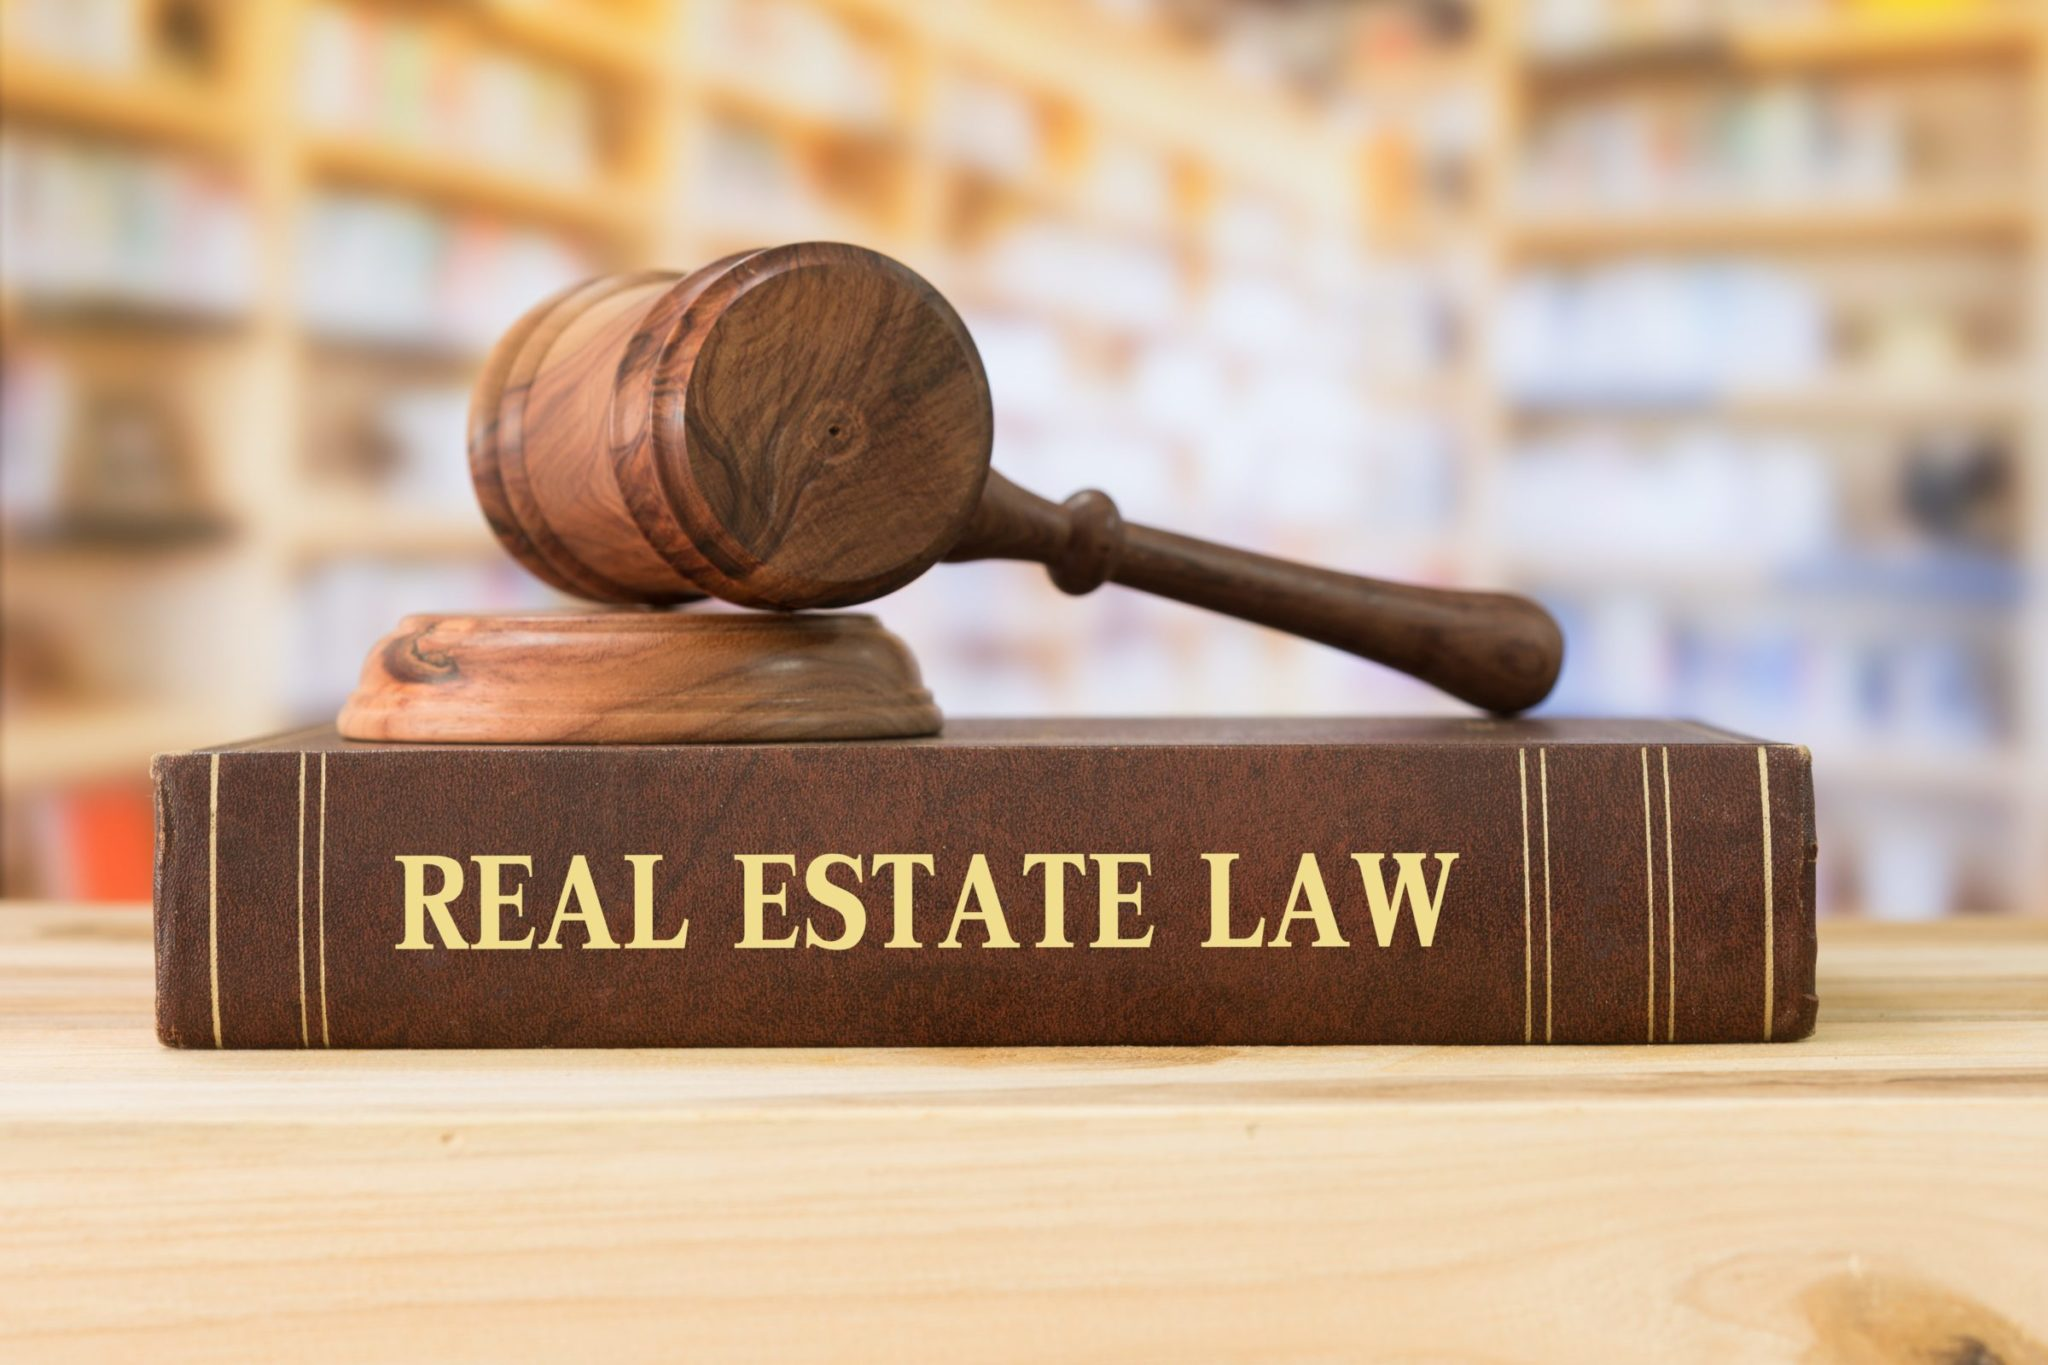 Real Estate Lawyer Appointments When Buying A Home Need. California Barber And Beauty College. Freelance Web Developer Sunday Walk In Clinic. Citrix Application Hosting Jive Voip Reviews. Engineering Colleges In Washington. Maximum Va Home Loan Amount Sign For Garden. Virtualization Technology Bios. How To Flush Cocaine Out Of Your System. Which Is Better Traditional Or Roth Ira